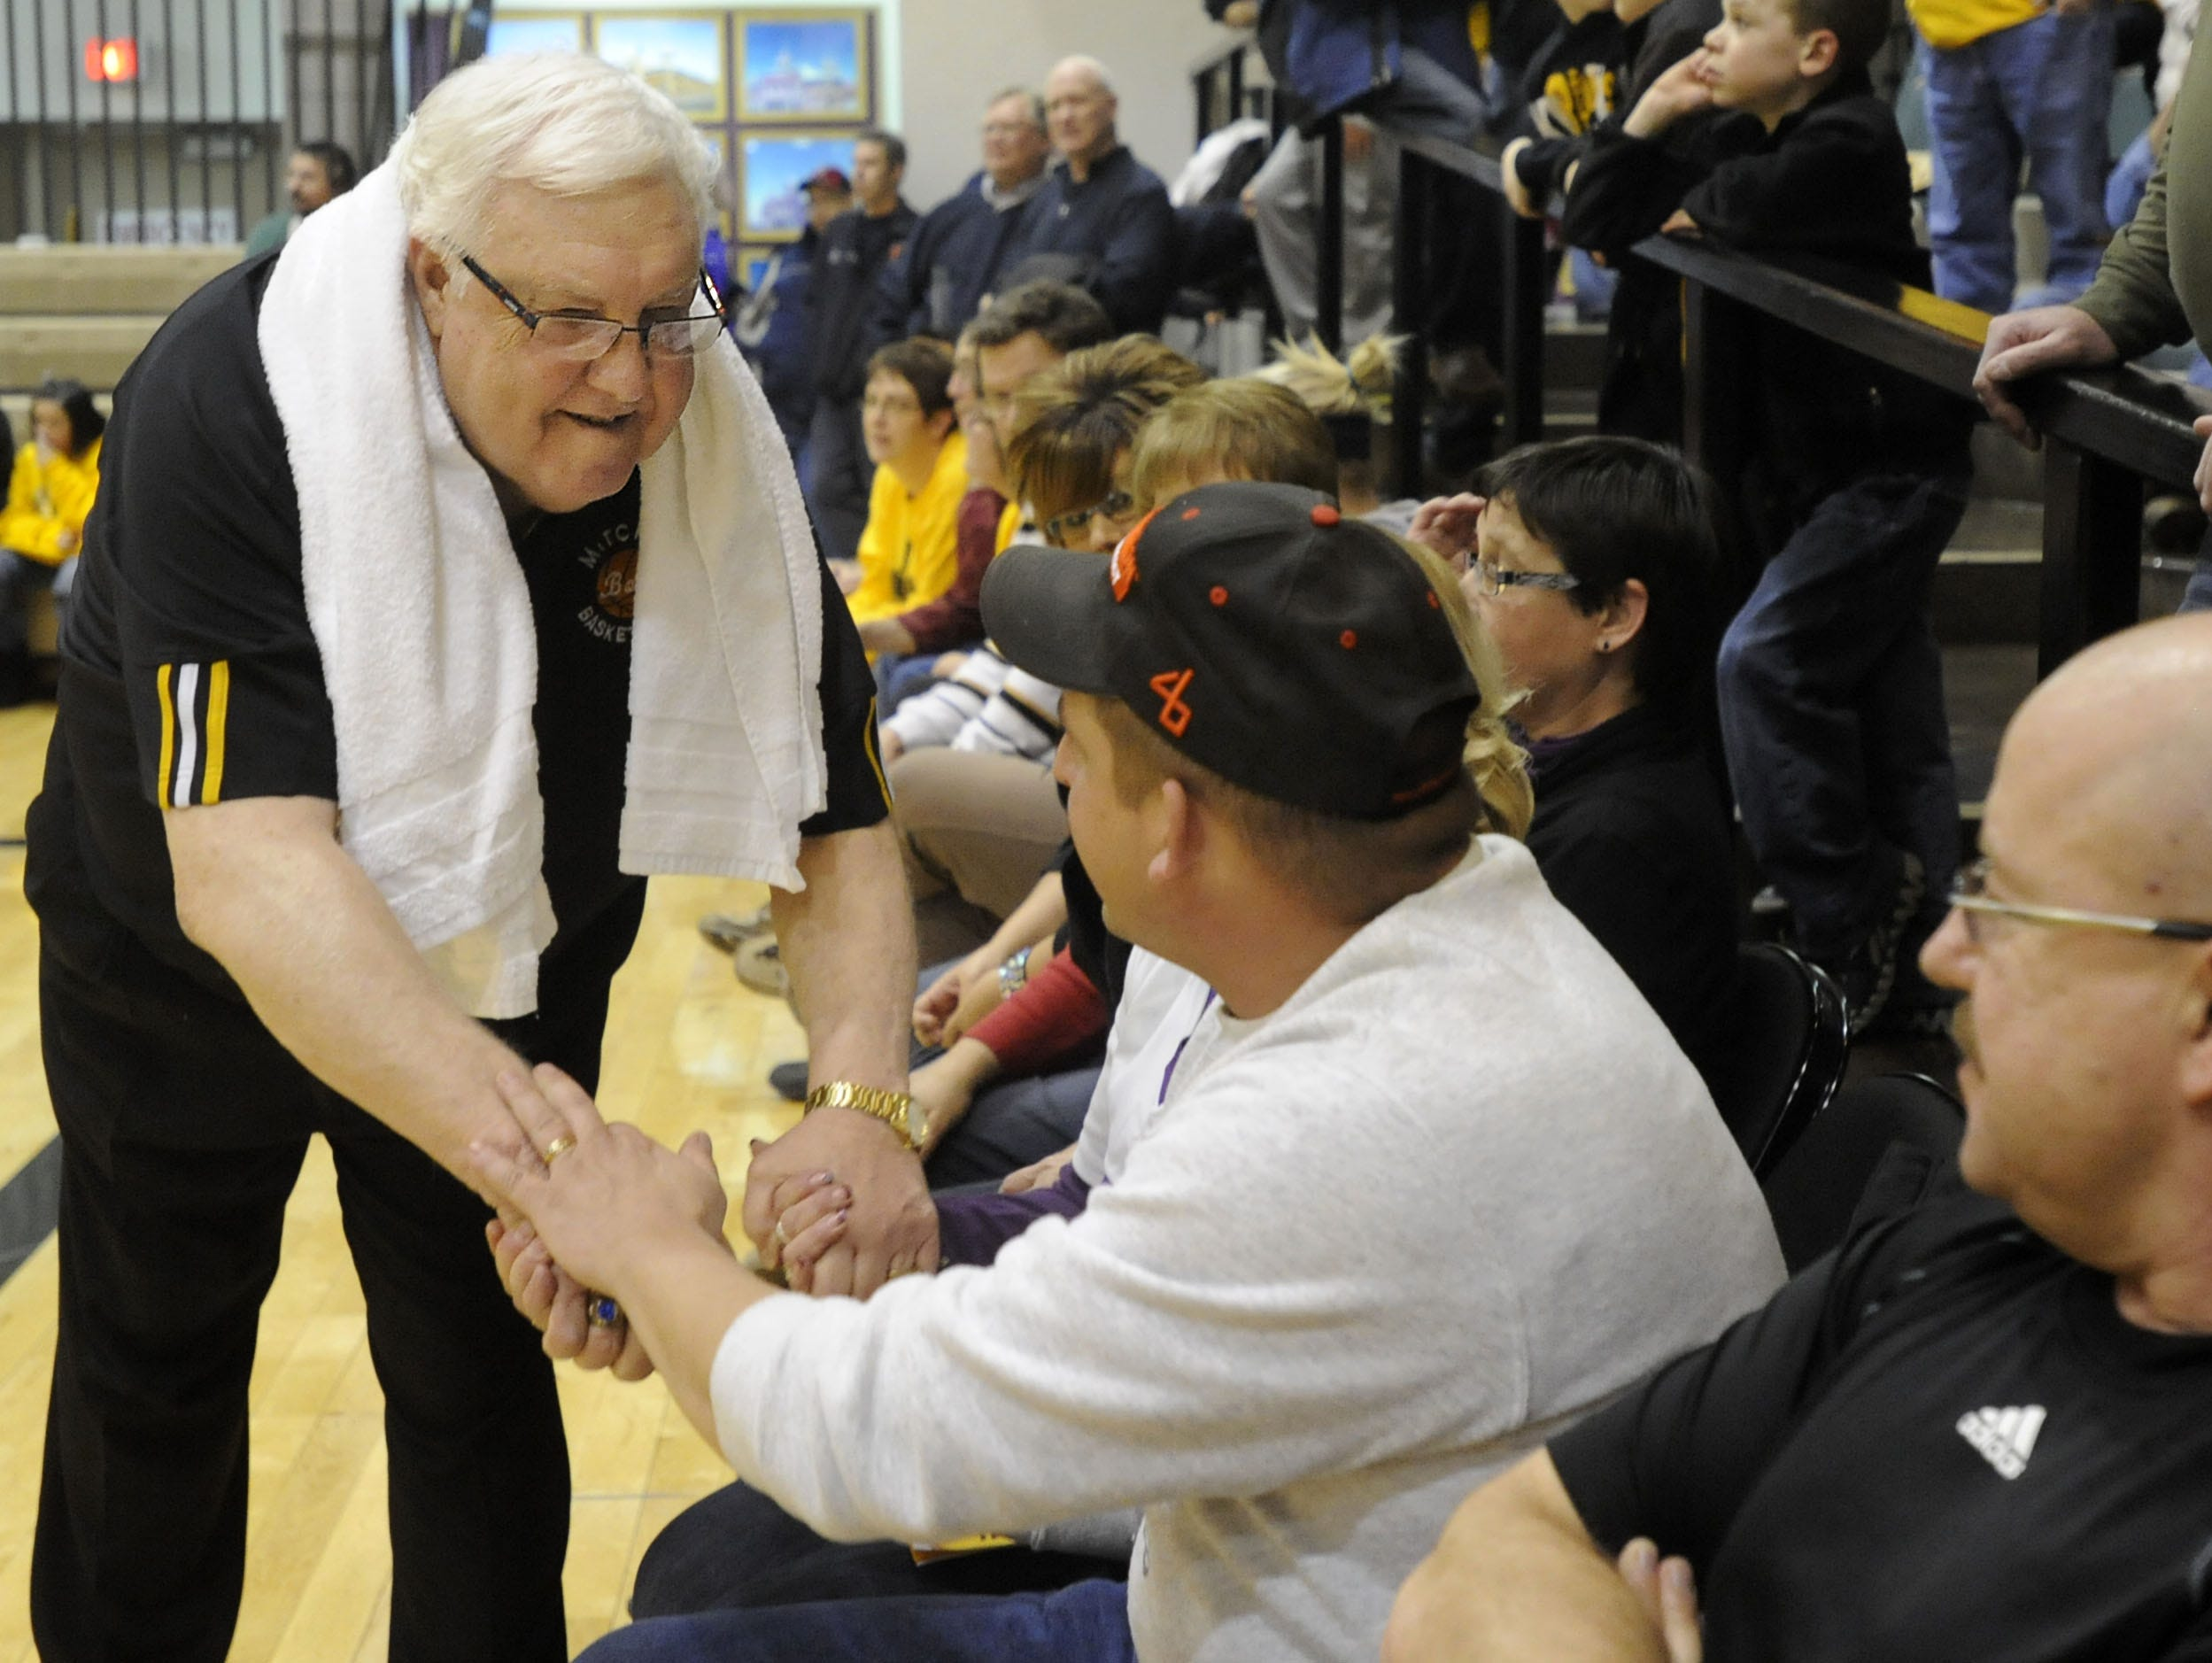 Mitchell High School boys basketball head coach Gary Munsen (left) greets fans and friends after he was honored at the Corn Palace on Feb. 14, 2012, in Mitchell, S.D. Munsen died Jan. 12, 2016.